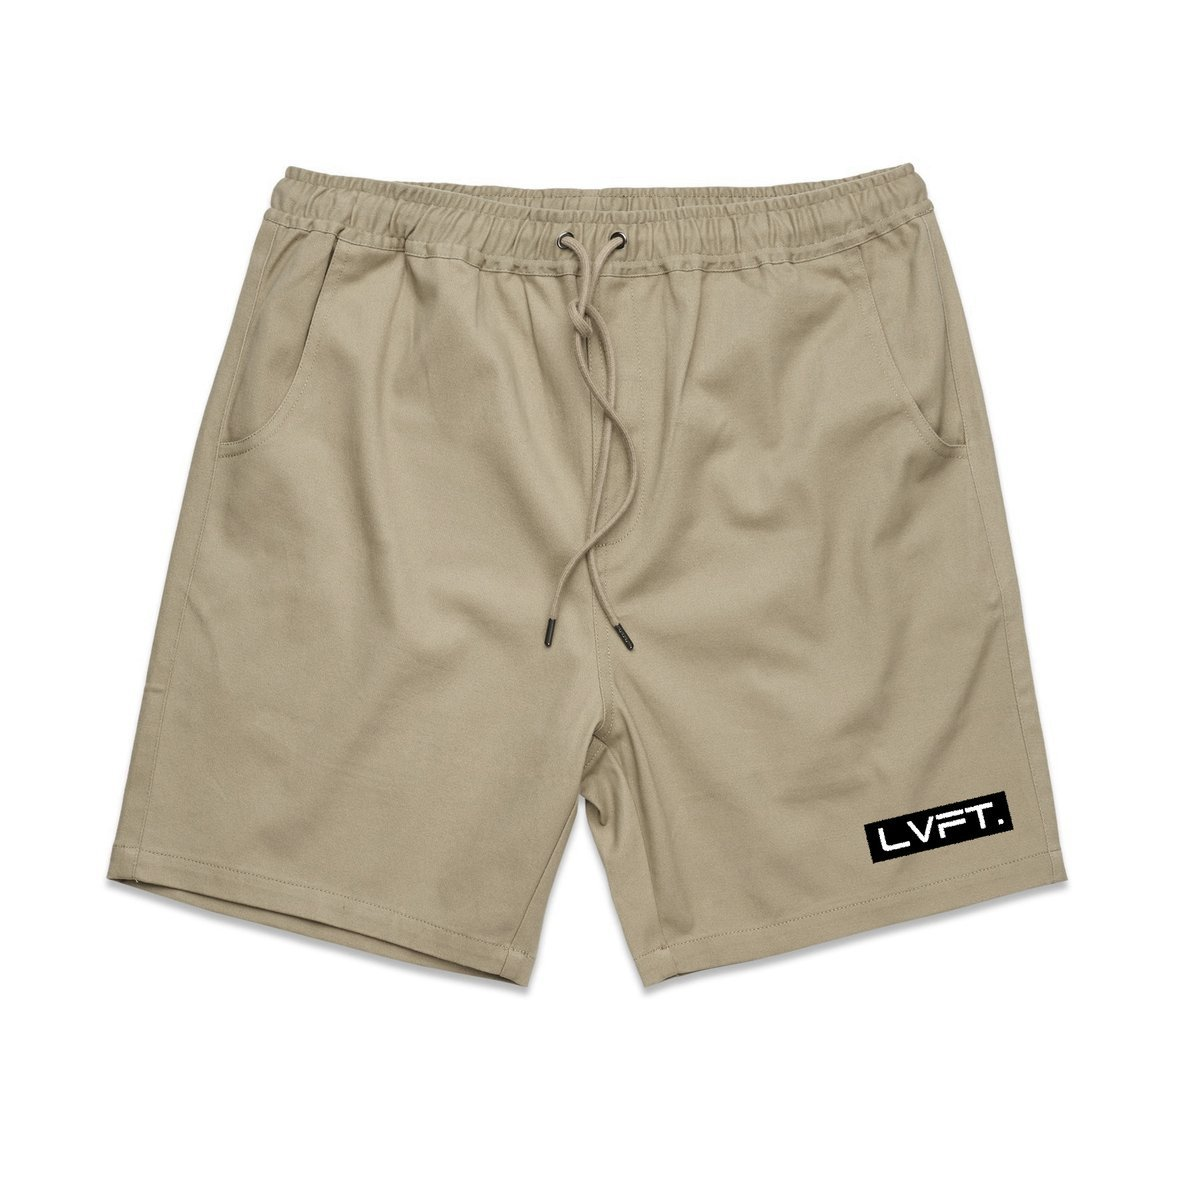 Live Fit Lifestyle Shorts-Khaki